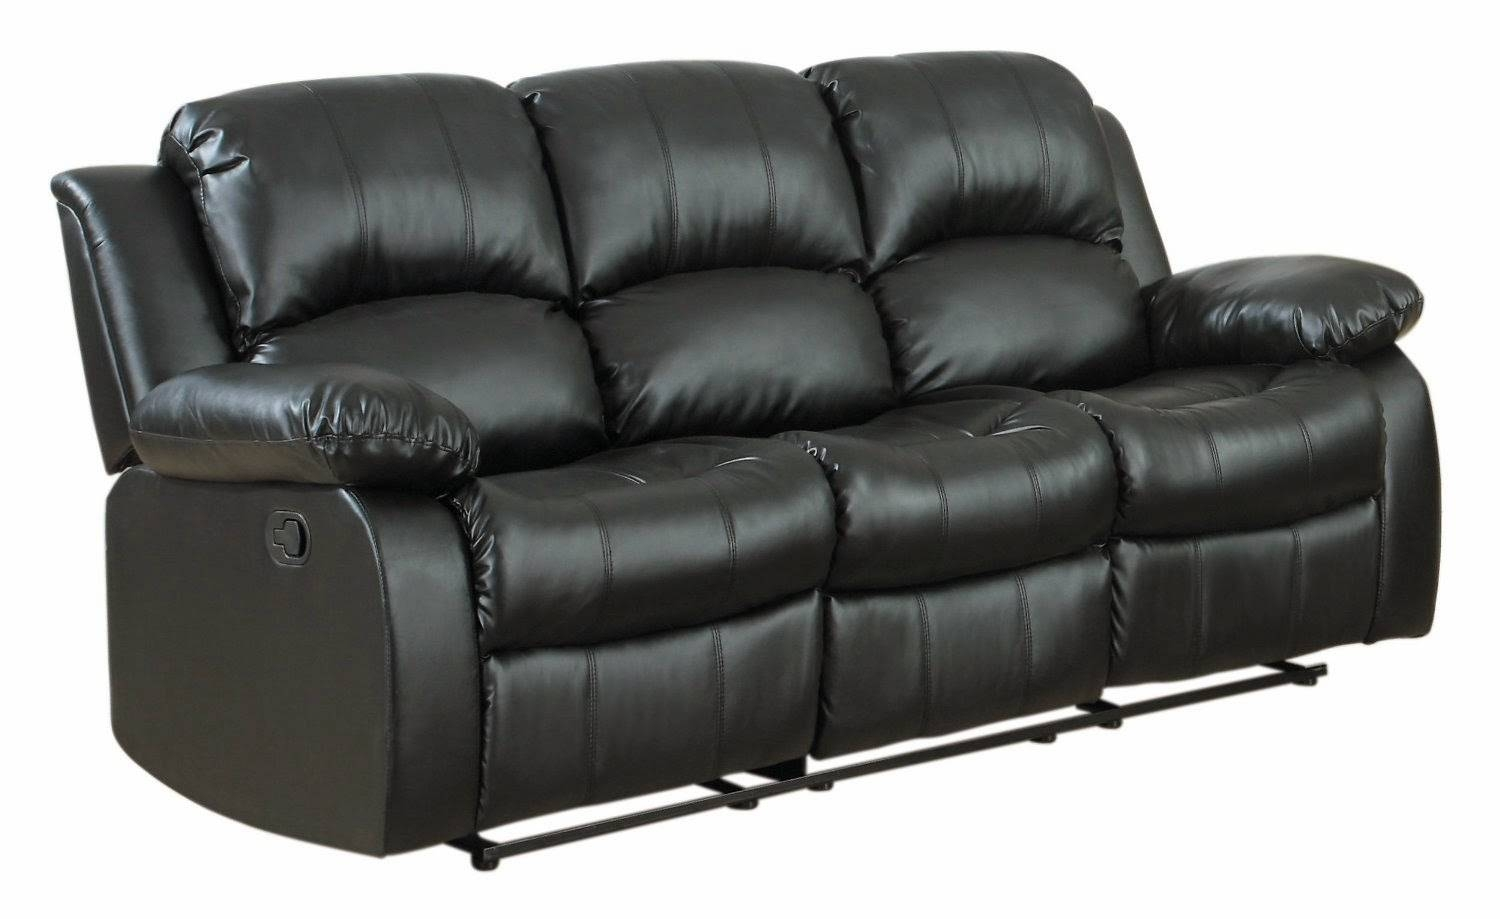 Reclining Sofas For Sale: Berkline Leather Reclining Sofa Costco within Berkline Couches (Image 14 of 15)